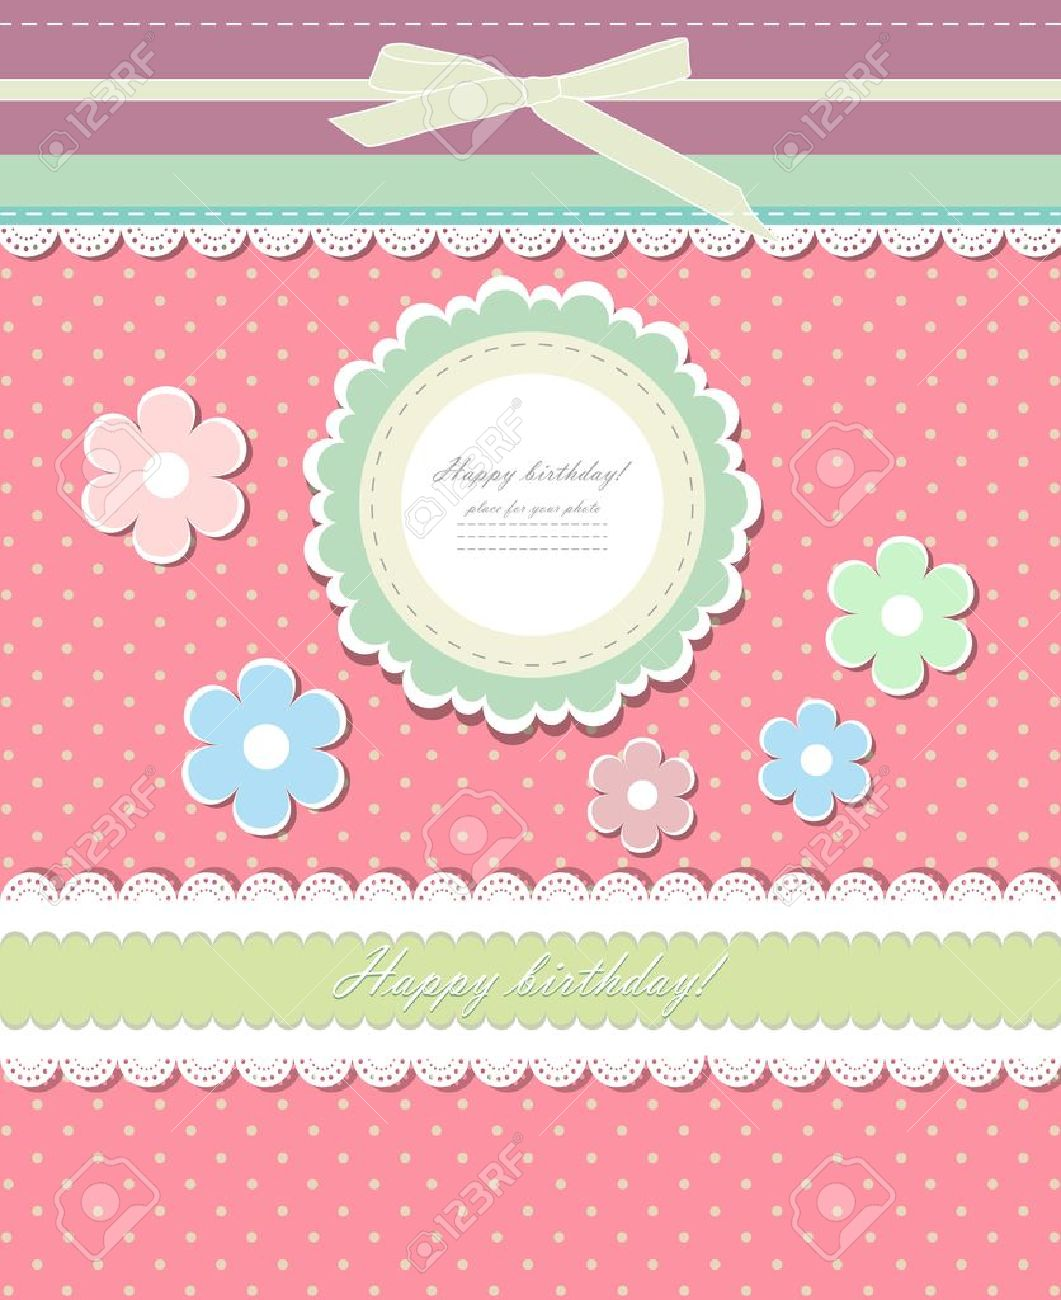 Vintage pink background for invitation Stock Vector - 17988774